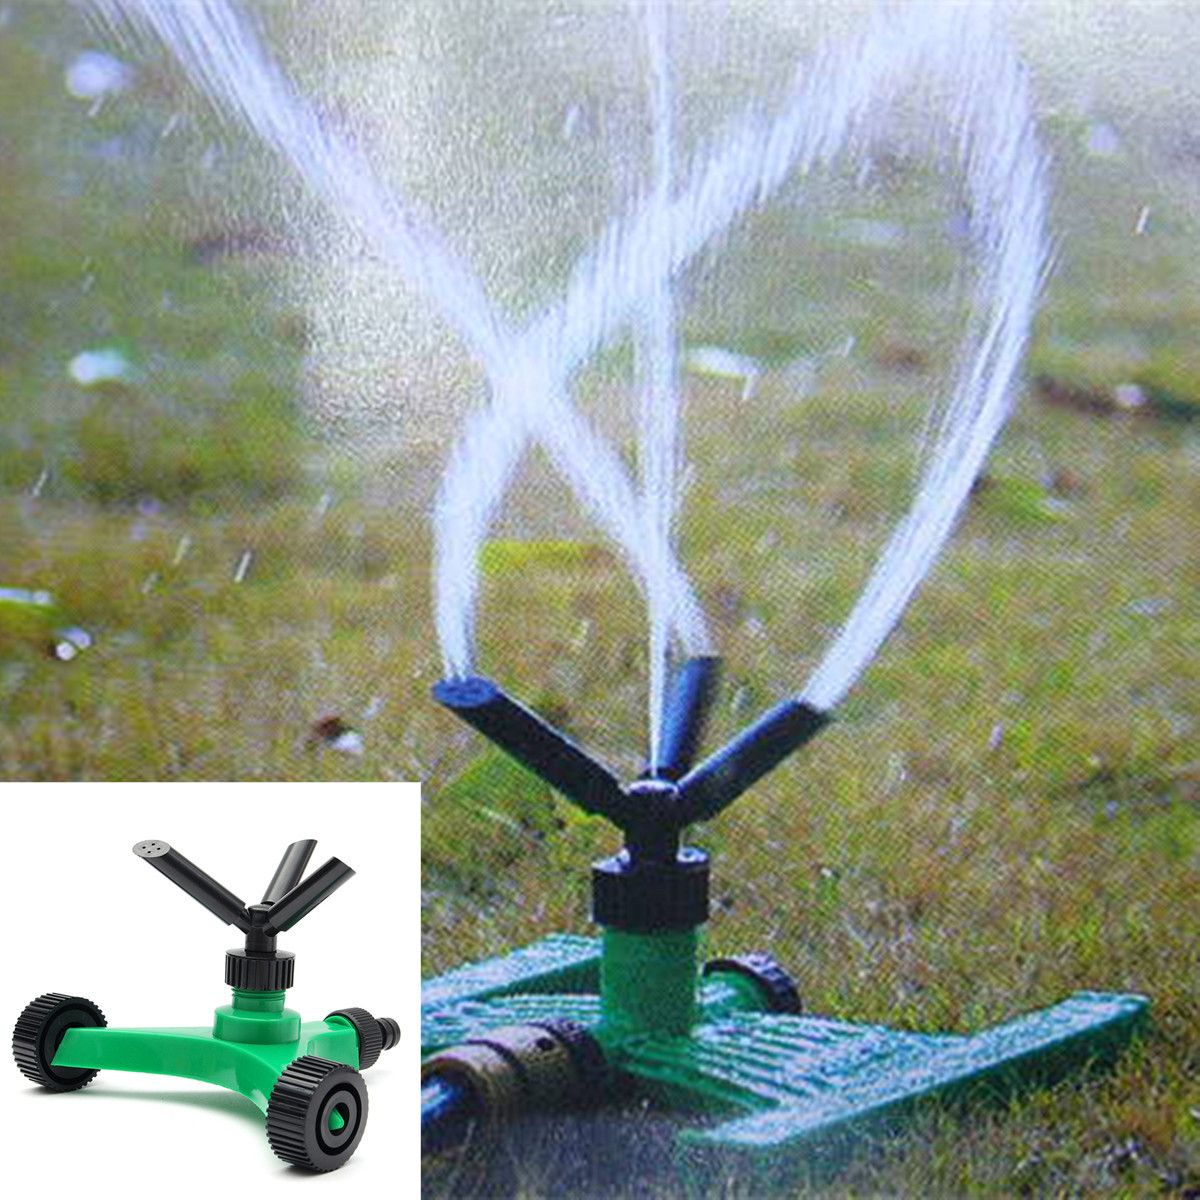 Recomeneded 2pcs 360 Fully Circle Rotating 3 Arm Water Sprinkler Patio Lawn Circular Automatic Garden Sprinklers Lawn Irrigation Practical Tool Gardening Wate Lawn Irrigation Sprinkler Water Saving Gardening